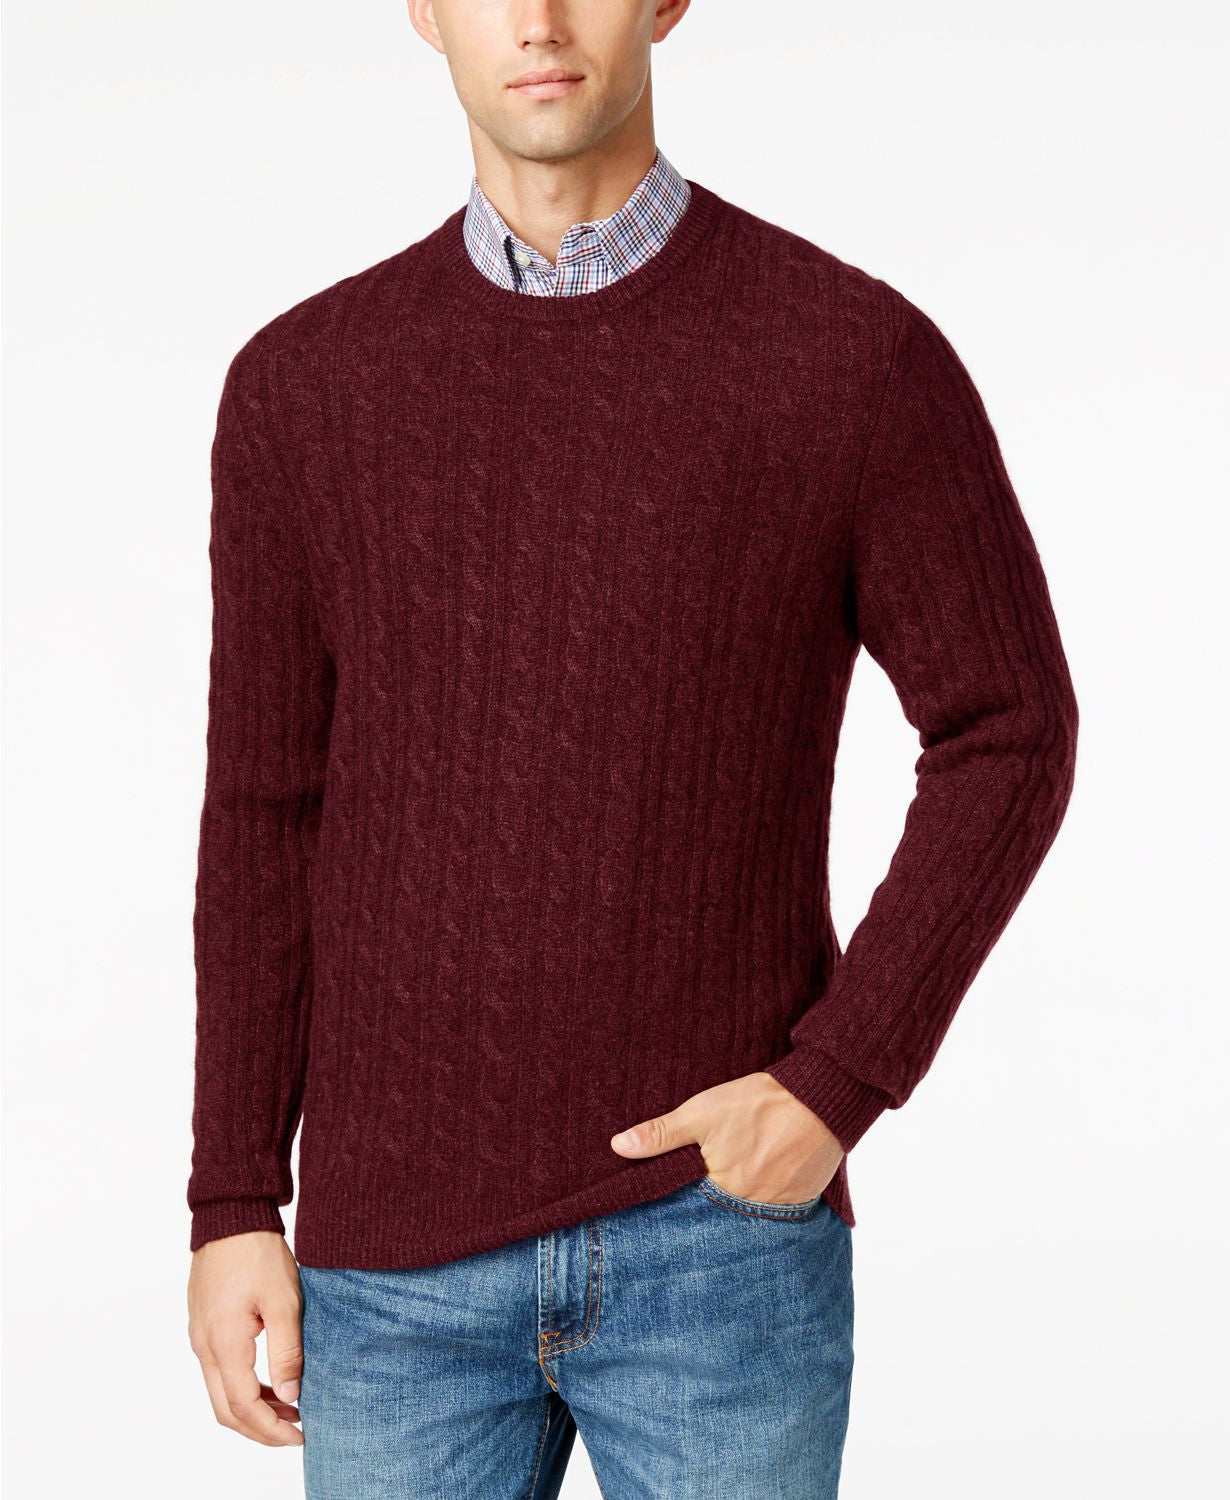 Club Room Cashmere Sweaters  Cabernet